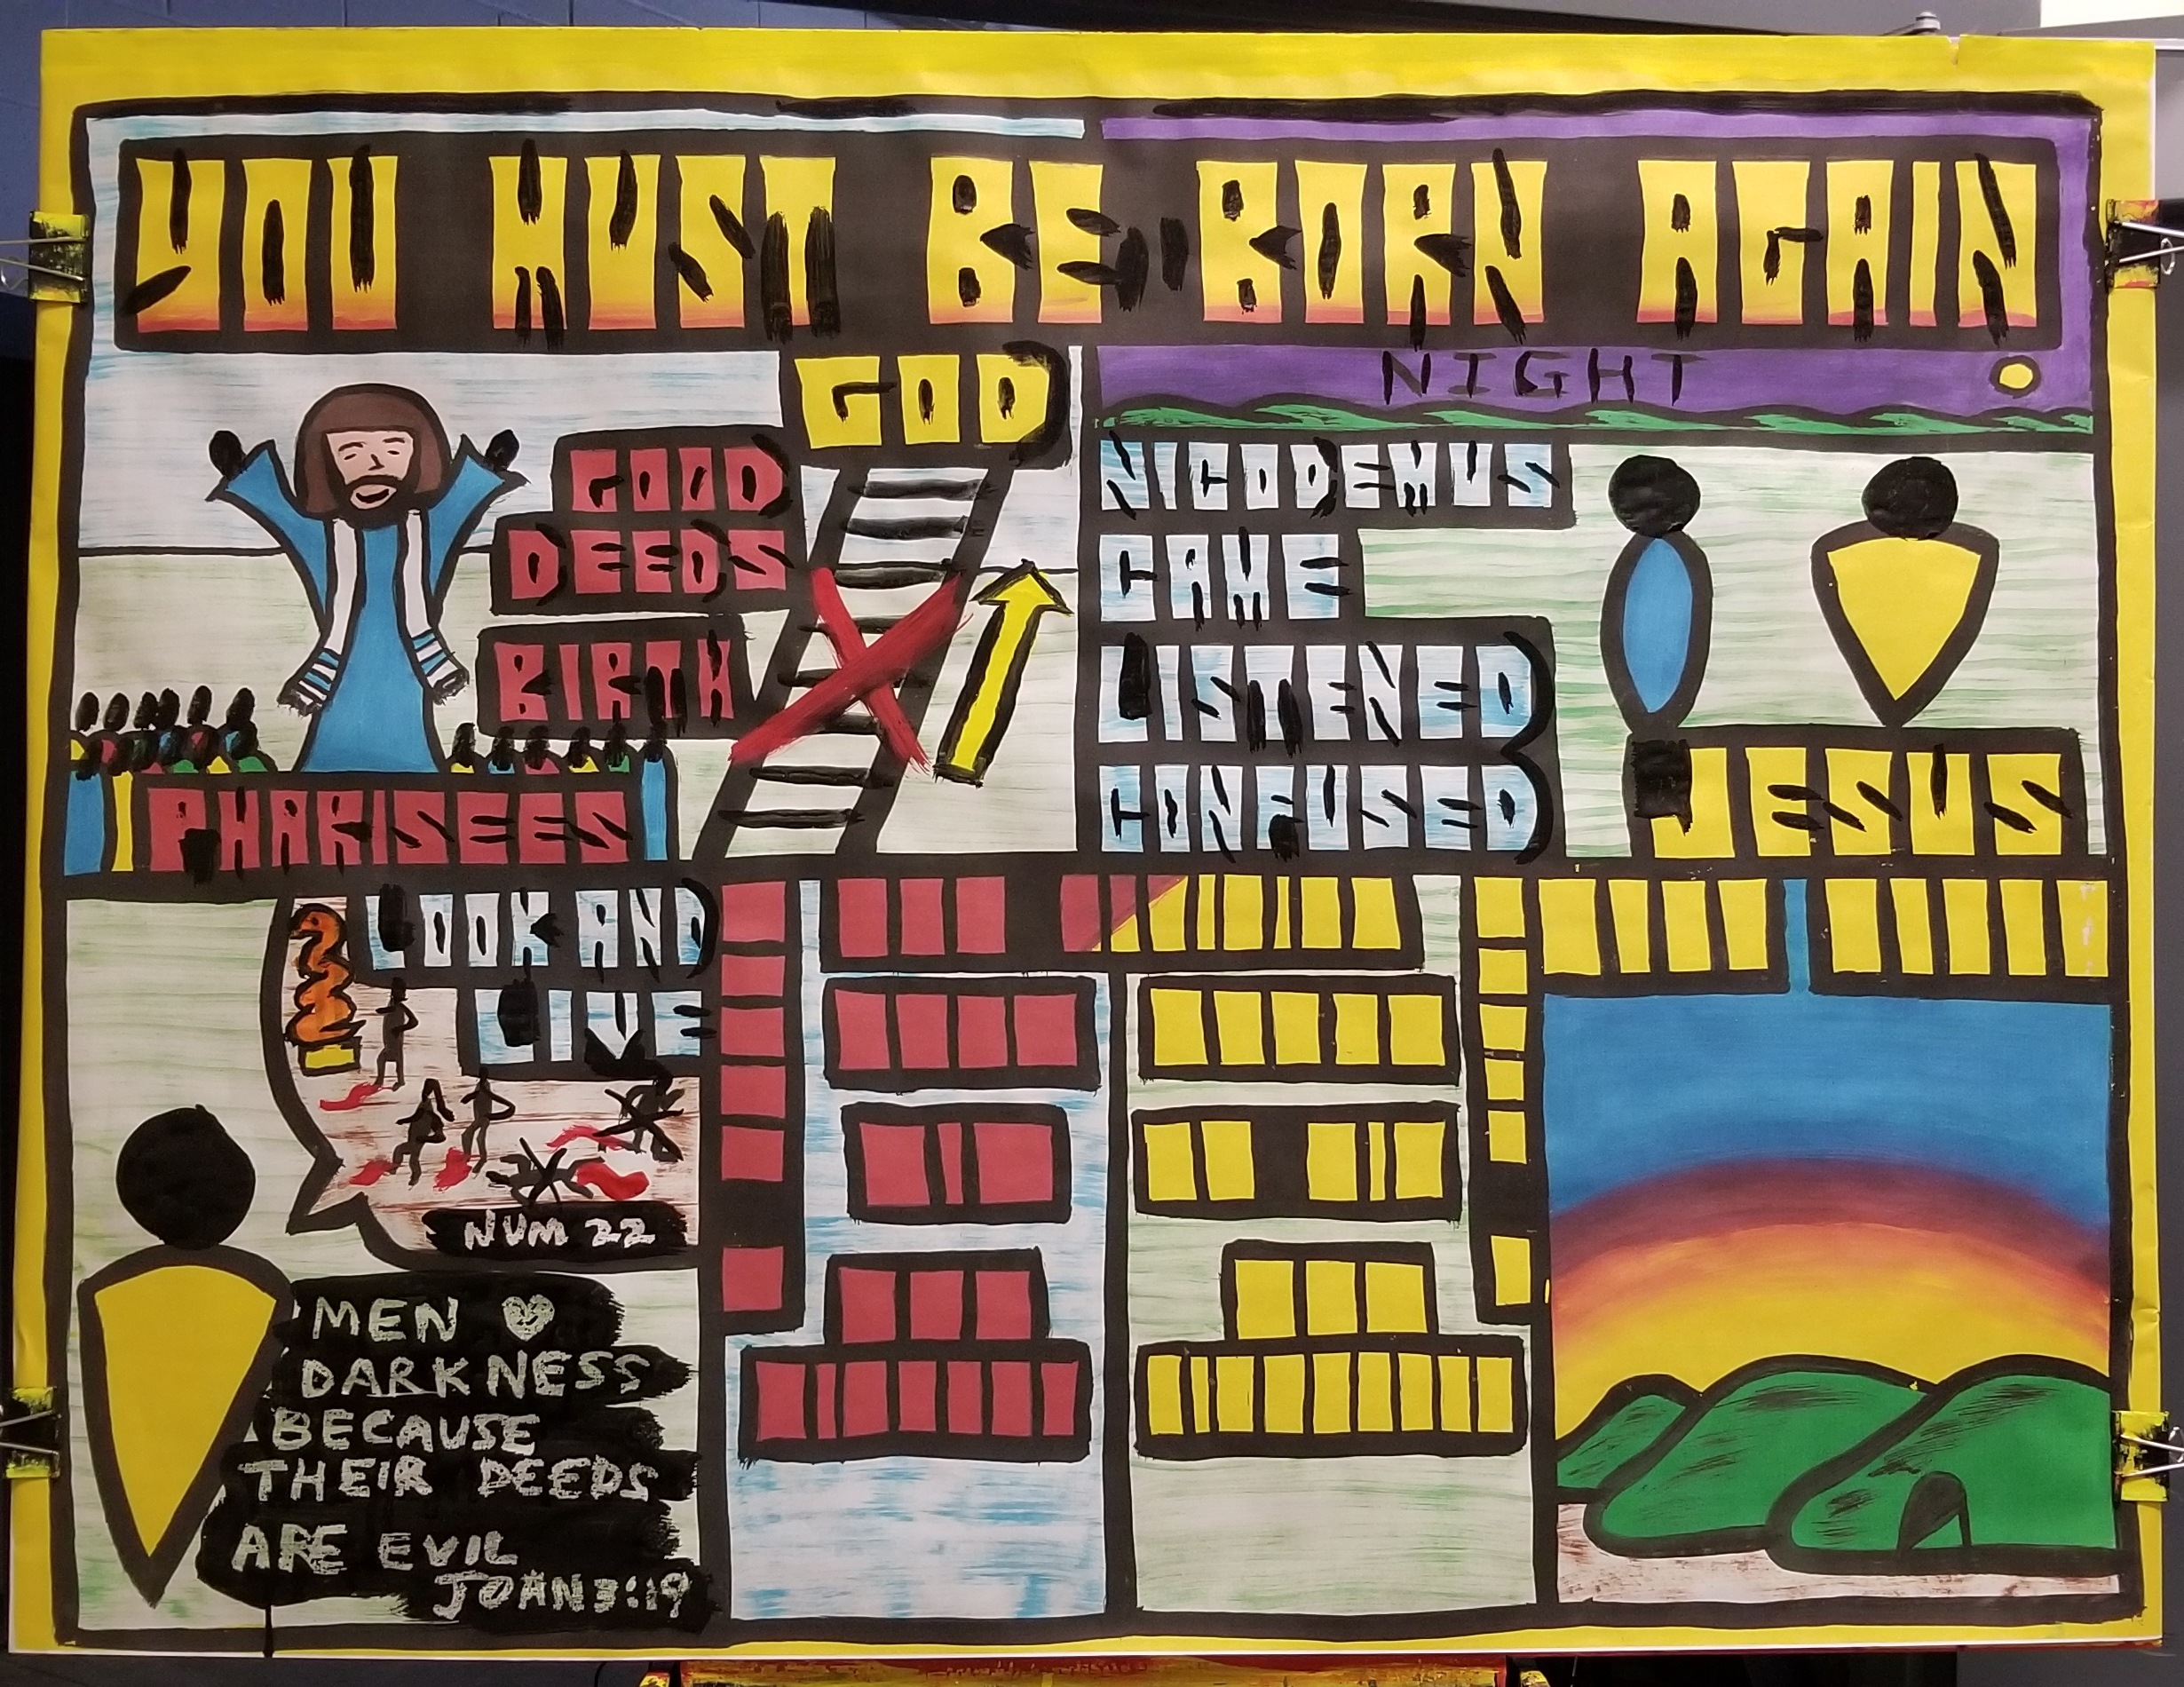 "Week two I taught the top-right quadrant, and the bottom left. One of the Pharisees, Nicodemus, came to Jesus at night. He listened to what Jesus had to say. We listen to Jesus today by reading the Bible. But Nicodemus got confused, just like we do sometimes when we read the Scriptures. You see, Nicodemus was a Pharisee, and we learned last week that the Pharisees believed that you had to have the right birth, and do good deeds, and they believed they had those two. But regarding the right birth, Jesus said, 'YOU MUST BE BORN AGAIN.' Our first birth isn't good enough.  Being Jewish isn't enough. And then Jesus referenced Numbers, chapter 22, when the Israelites were very sinful. Of all the Old Testament accounts Jesus could pick, He chose one that illustrated how bad we are. Jesus even said, 'Men love darkness because their deeds are evil"" (John 3:19). Those good deeds the Pharisees were trusting in... well, they're not very good. Jesus told Nicodemus that his first birth isn't good enough and his deeds aren't good enough. What is good enough to get us right with God? We'll learn that in coming weeks!"